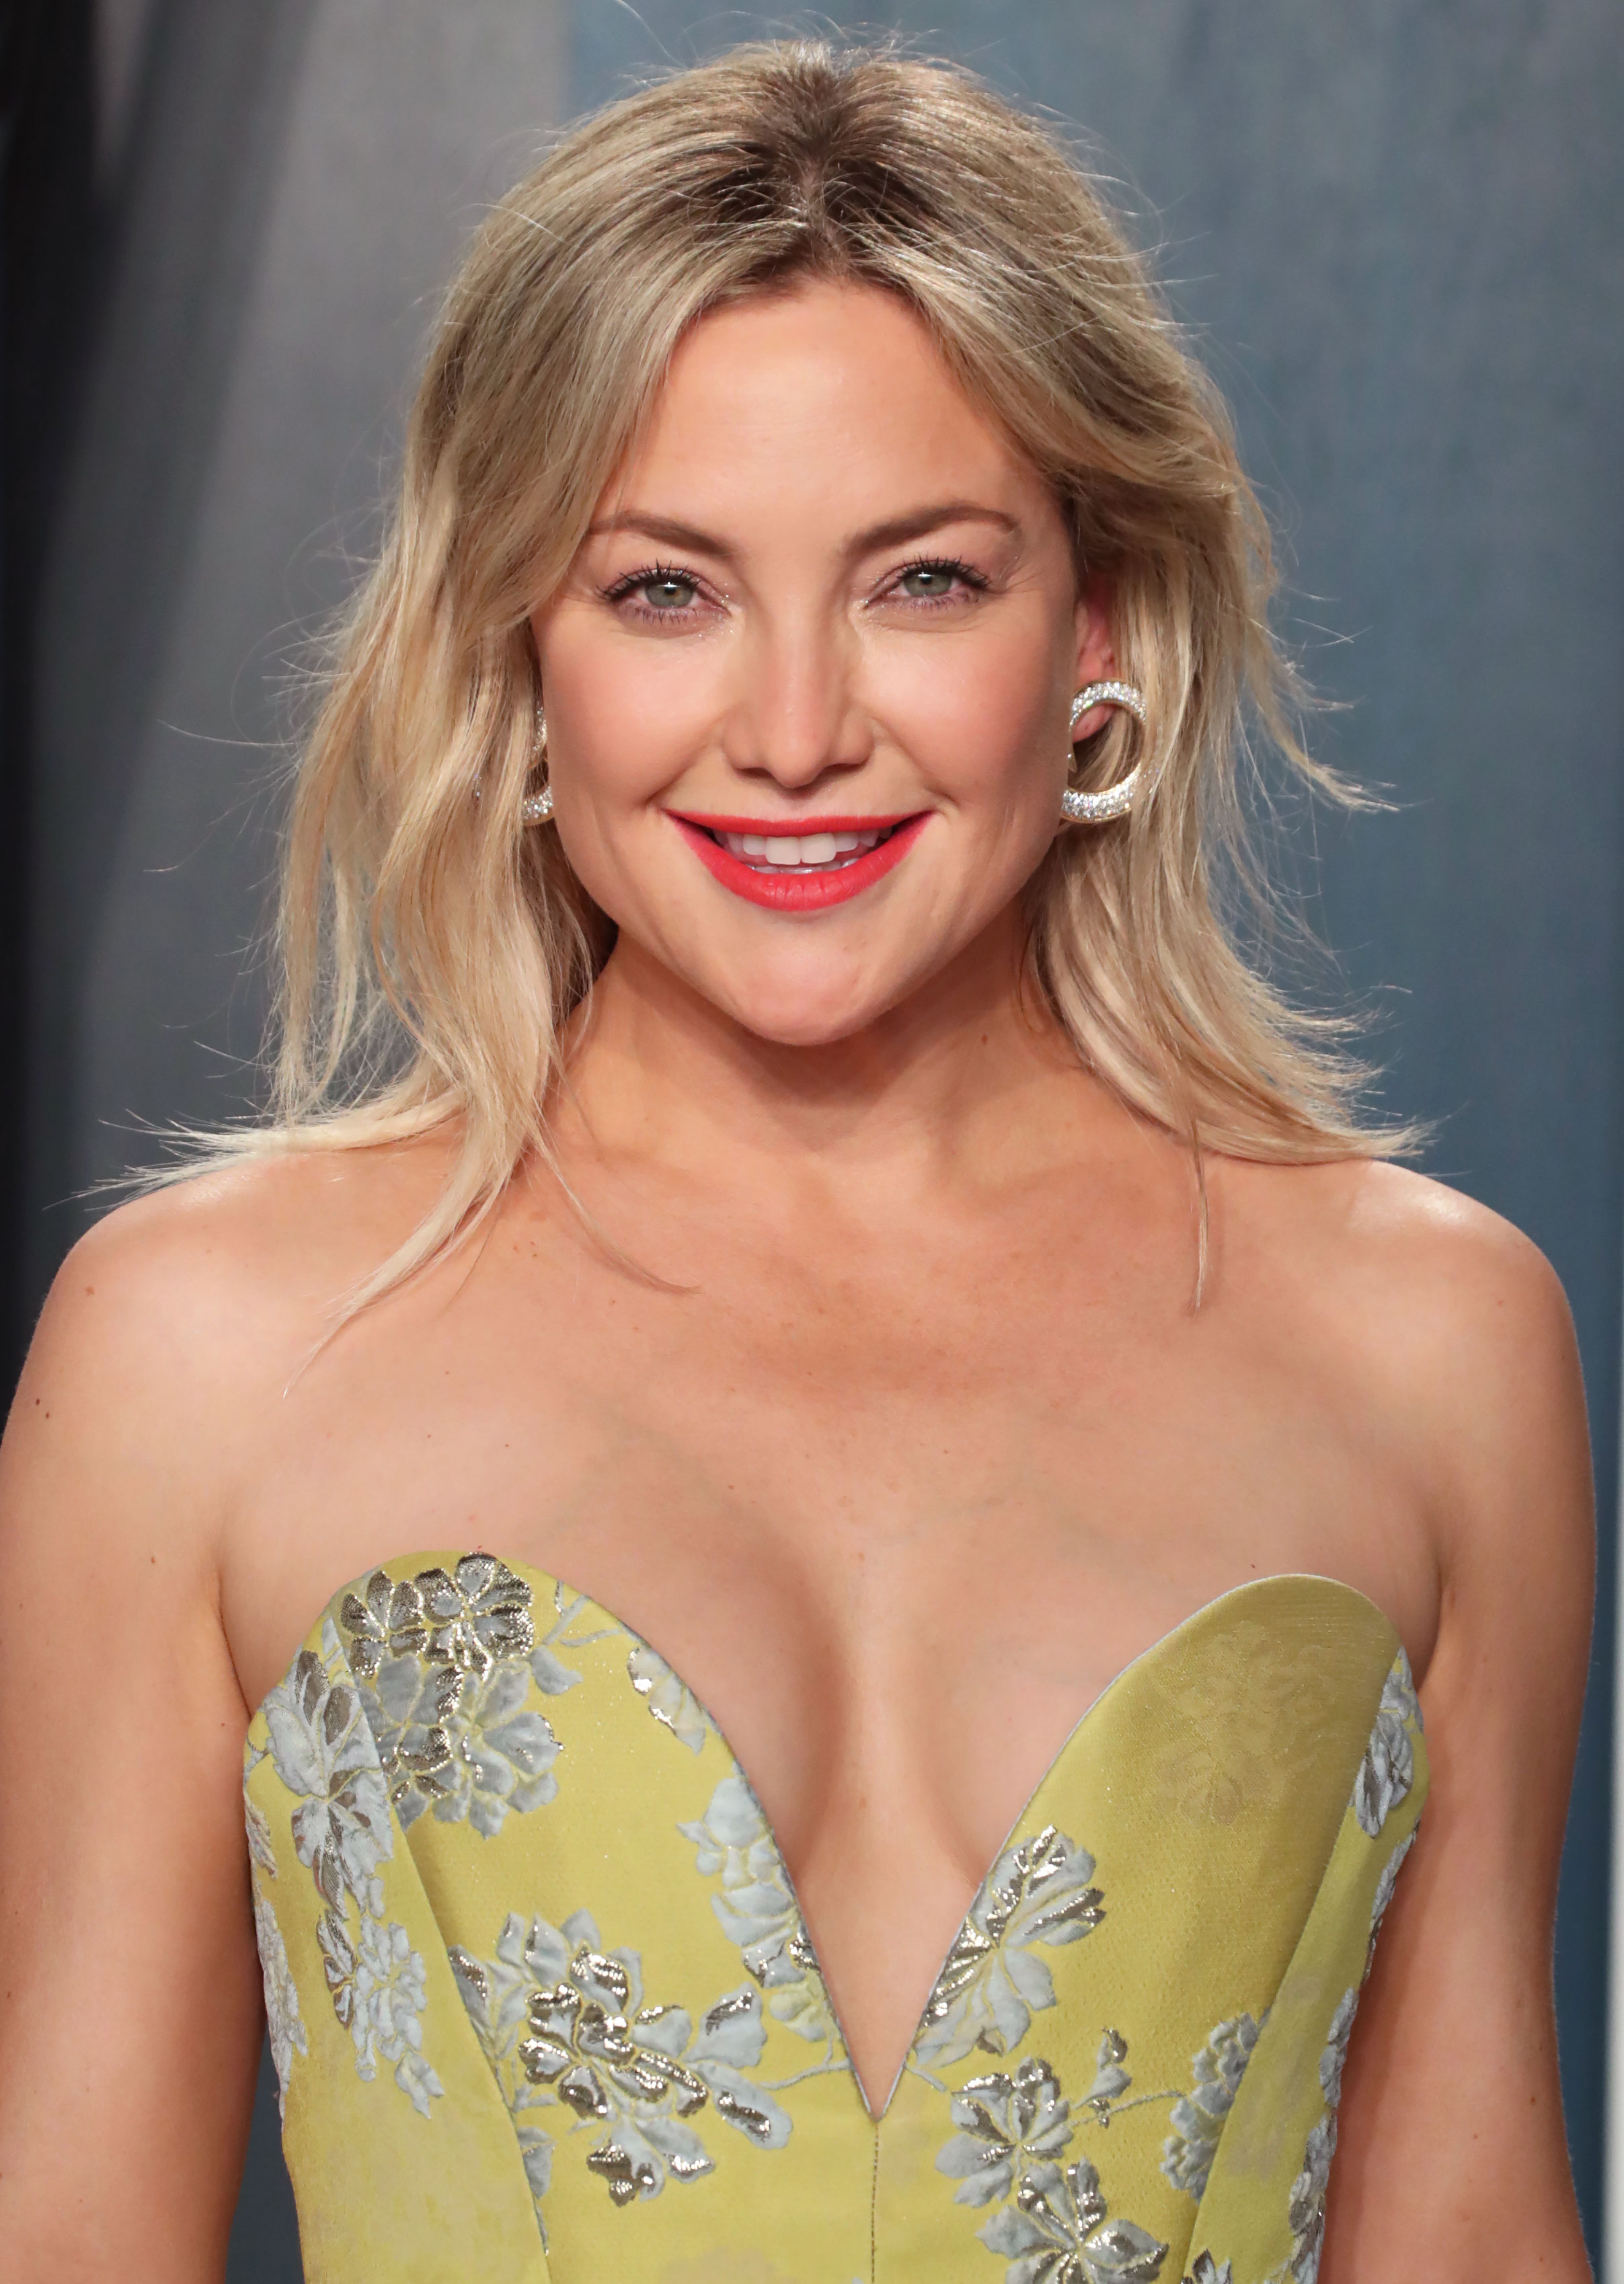 Kate Hudson Starts Off 2021 With a New Surprising Hair Color